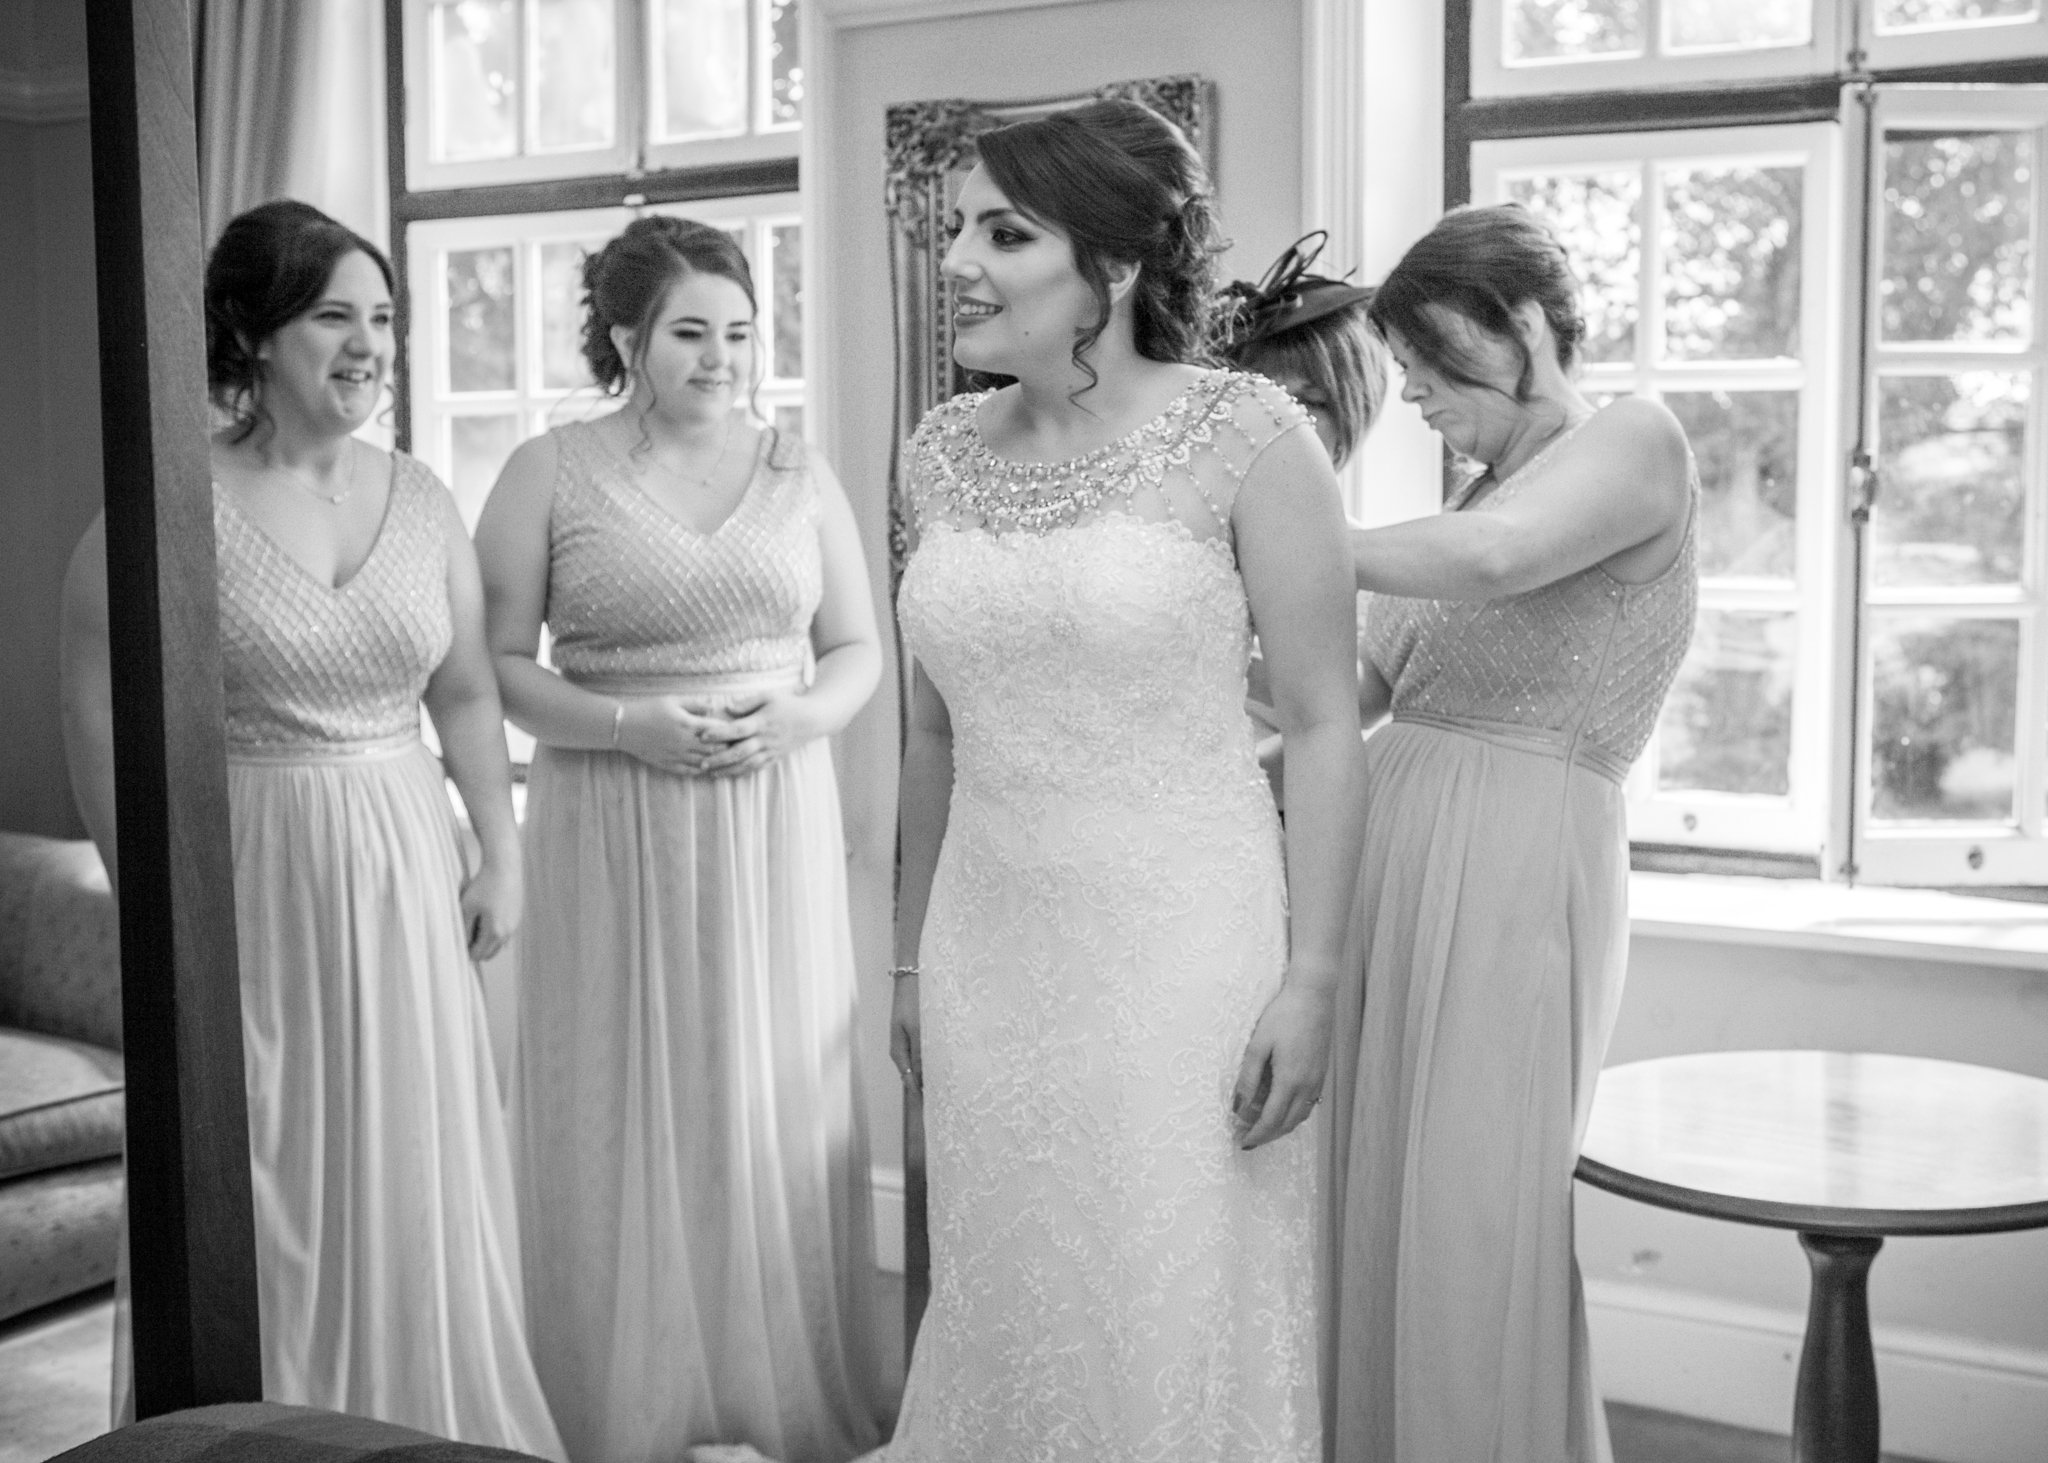 Bridal Preparations, Llansantffraed Court Wedding, Tania Miller Photography, Abergavenny wedding photographer, wedding photography Cwmbran